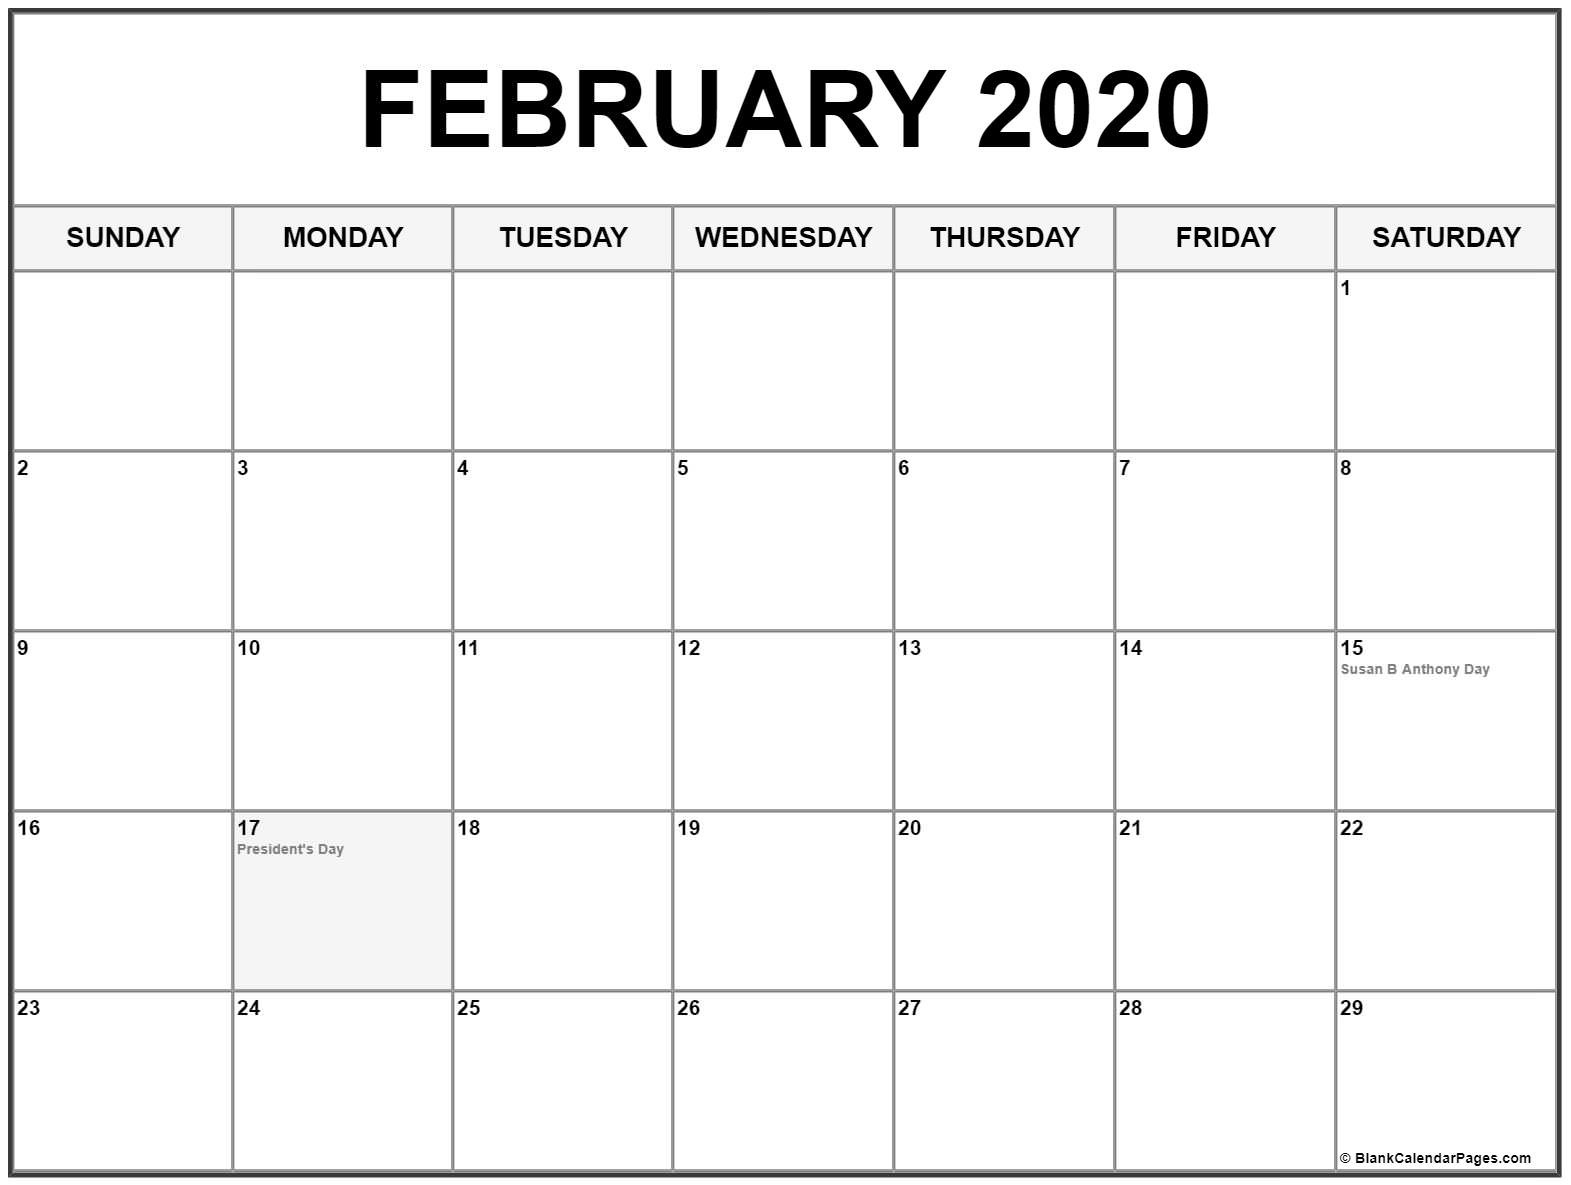 February 2020 Calendar With Holidays  February 2020 Calendar